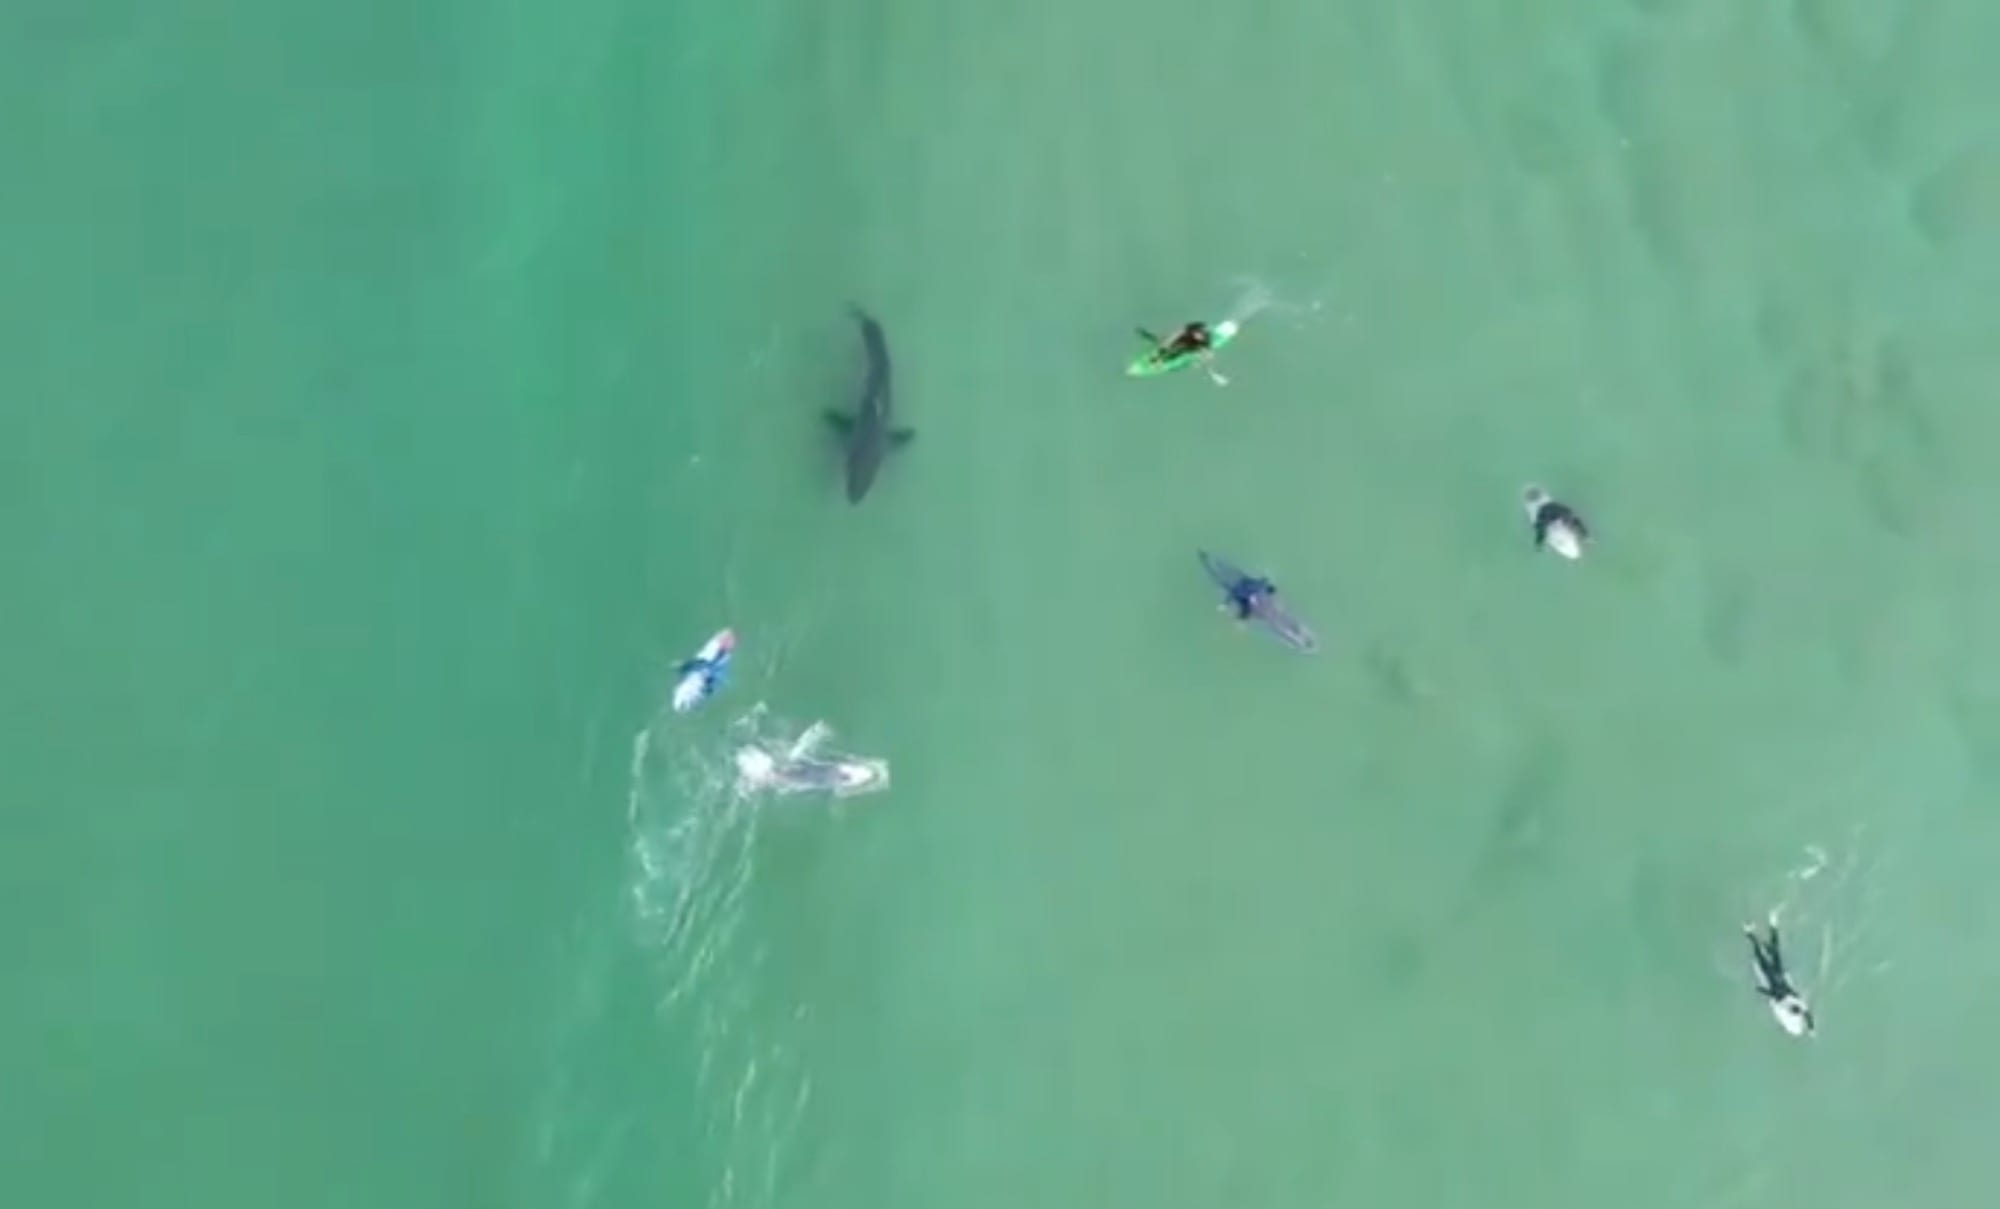 Drone video shows Great White Shark and surfers in a very close encounter